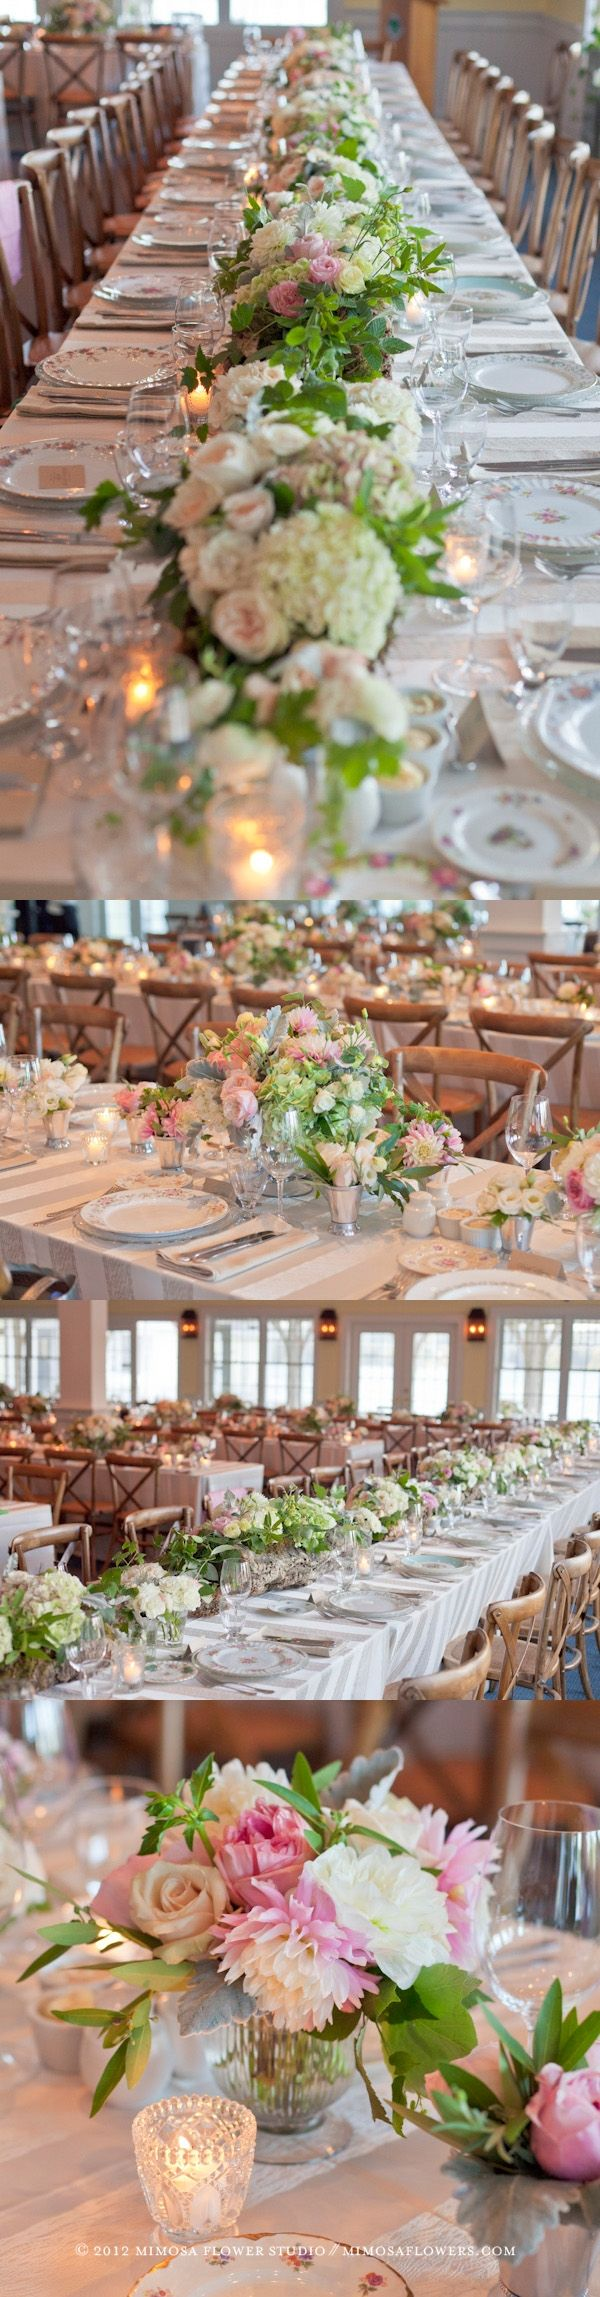 An Elegant Cottage Country Wedding - like the center pieces running down the table + silver vases